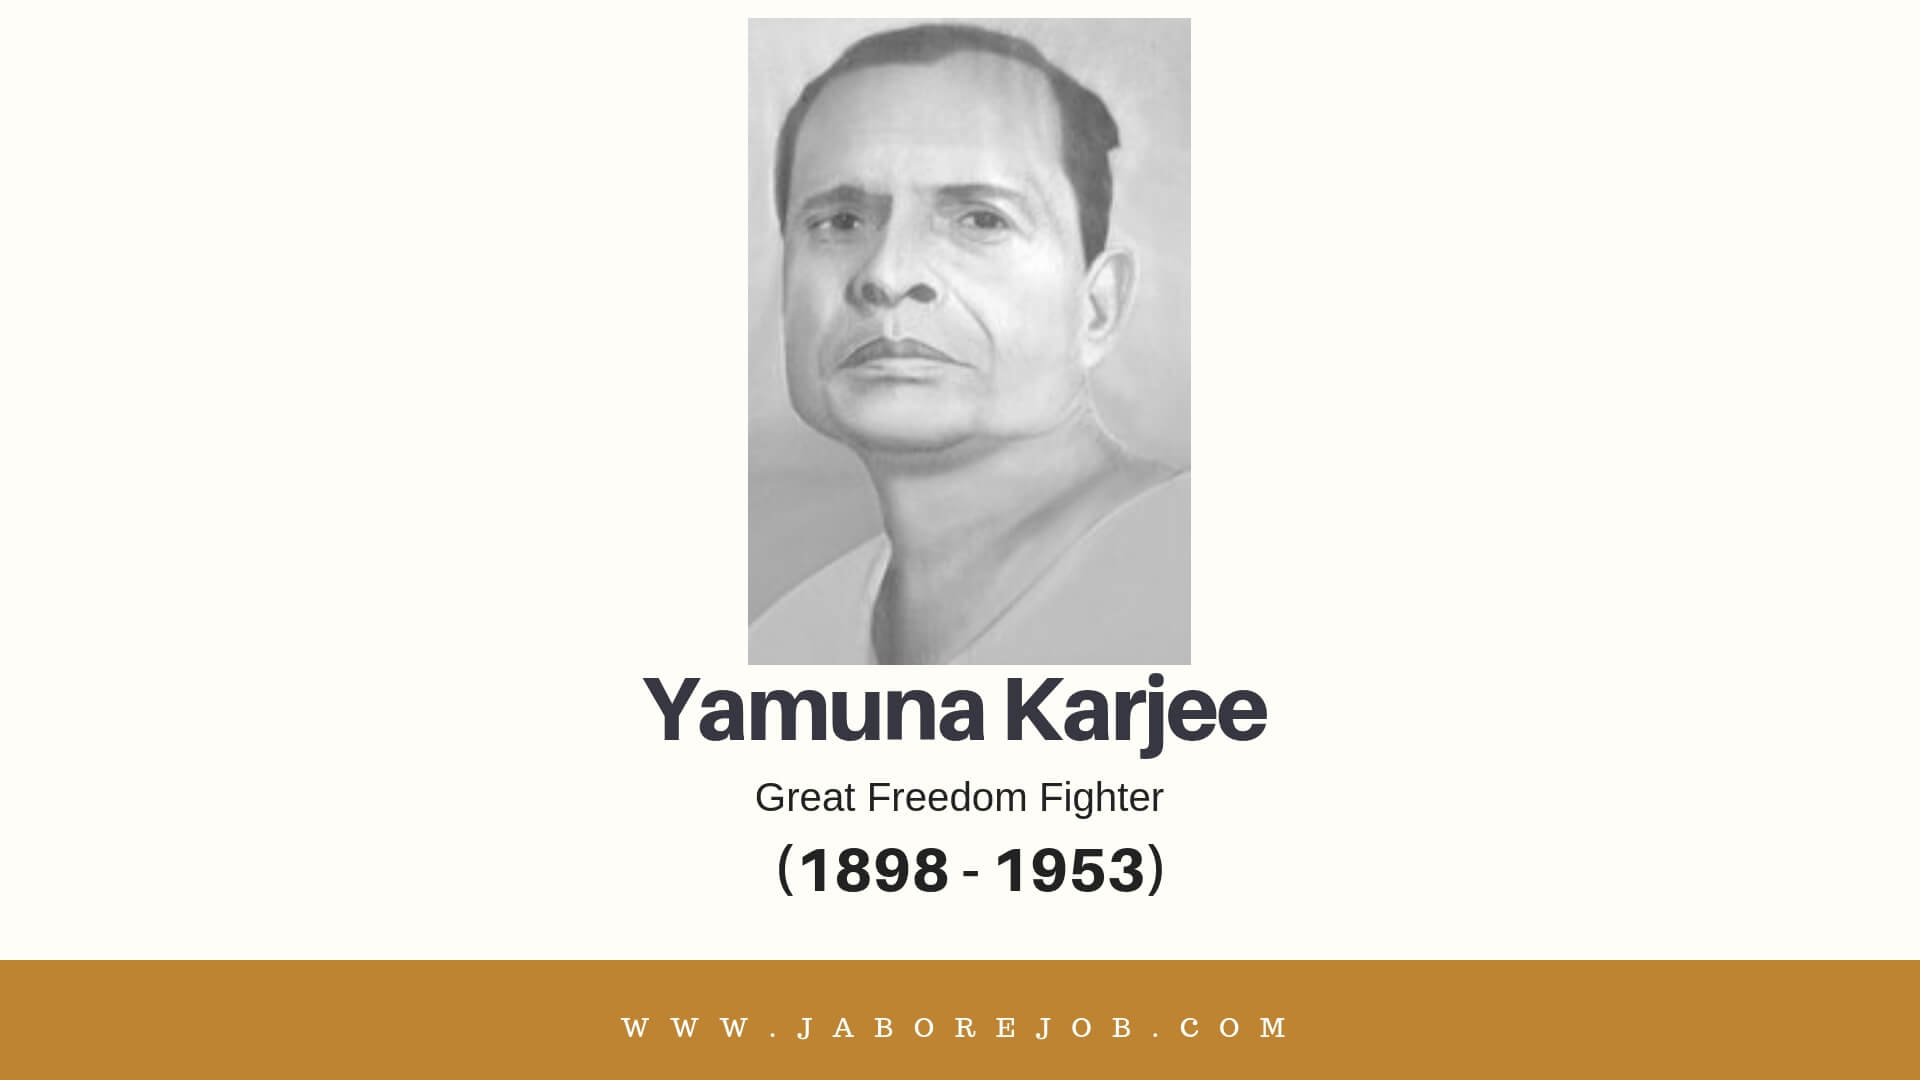 Yamuna Karjee, Yamuna Karjee freedom fighter, Yamuna Karjee biography, Yamuna Karjee history, Yamuna Karjee life story;